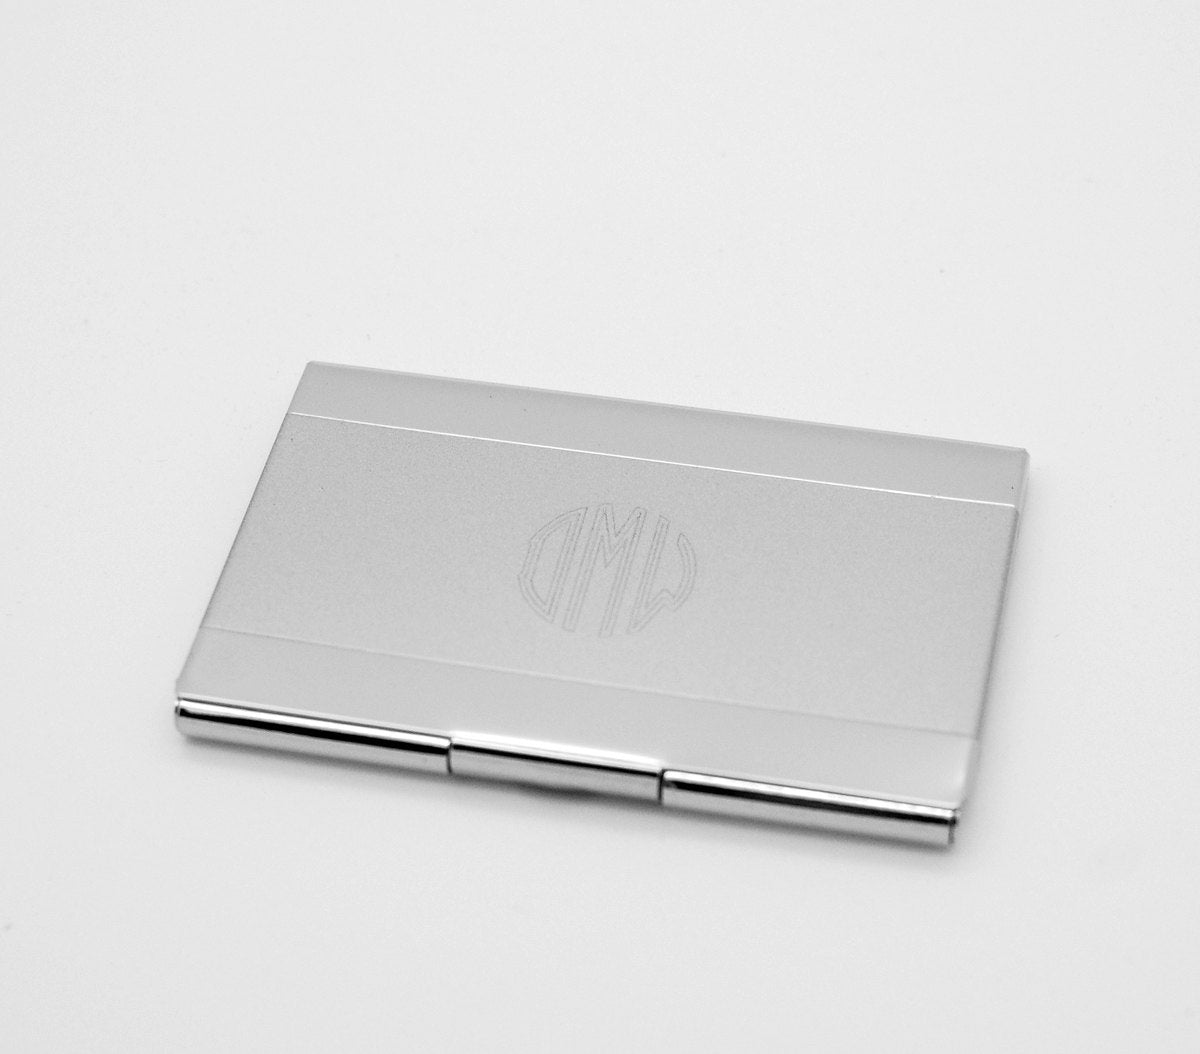 personalized business card case engraved card holder with shiny surface executive gift - Personalized Business Card Case